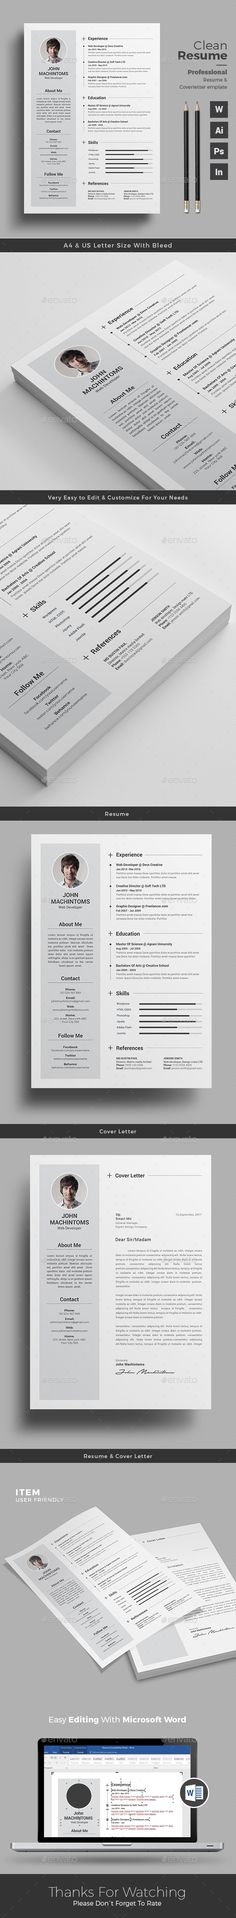 3 Page Resume Template for Word Creative, Words and Resume - professional word templates